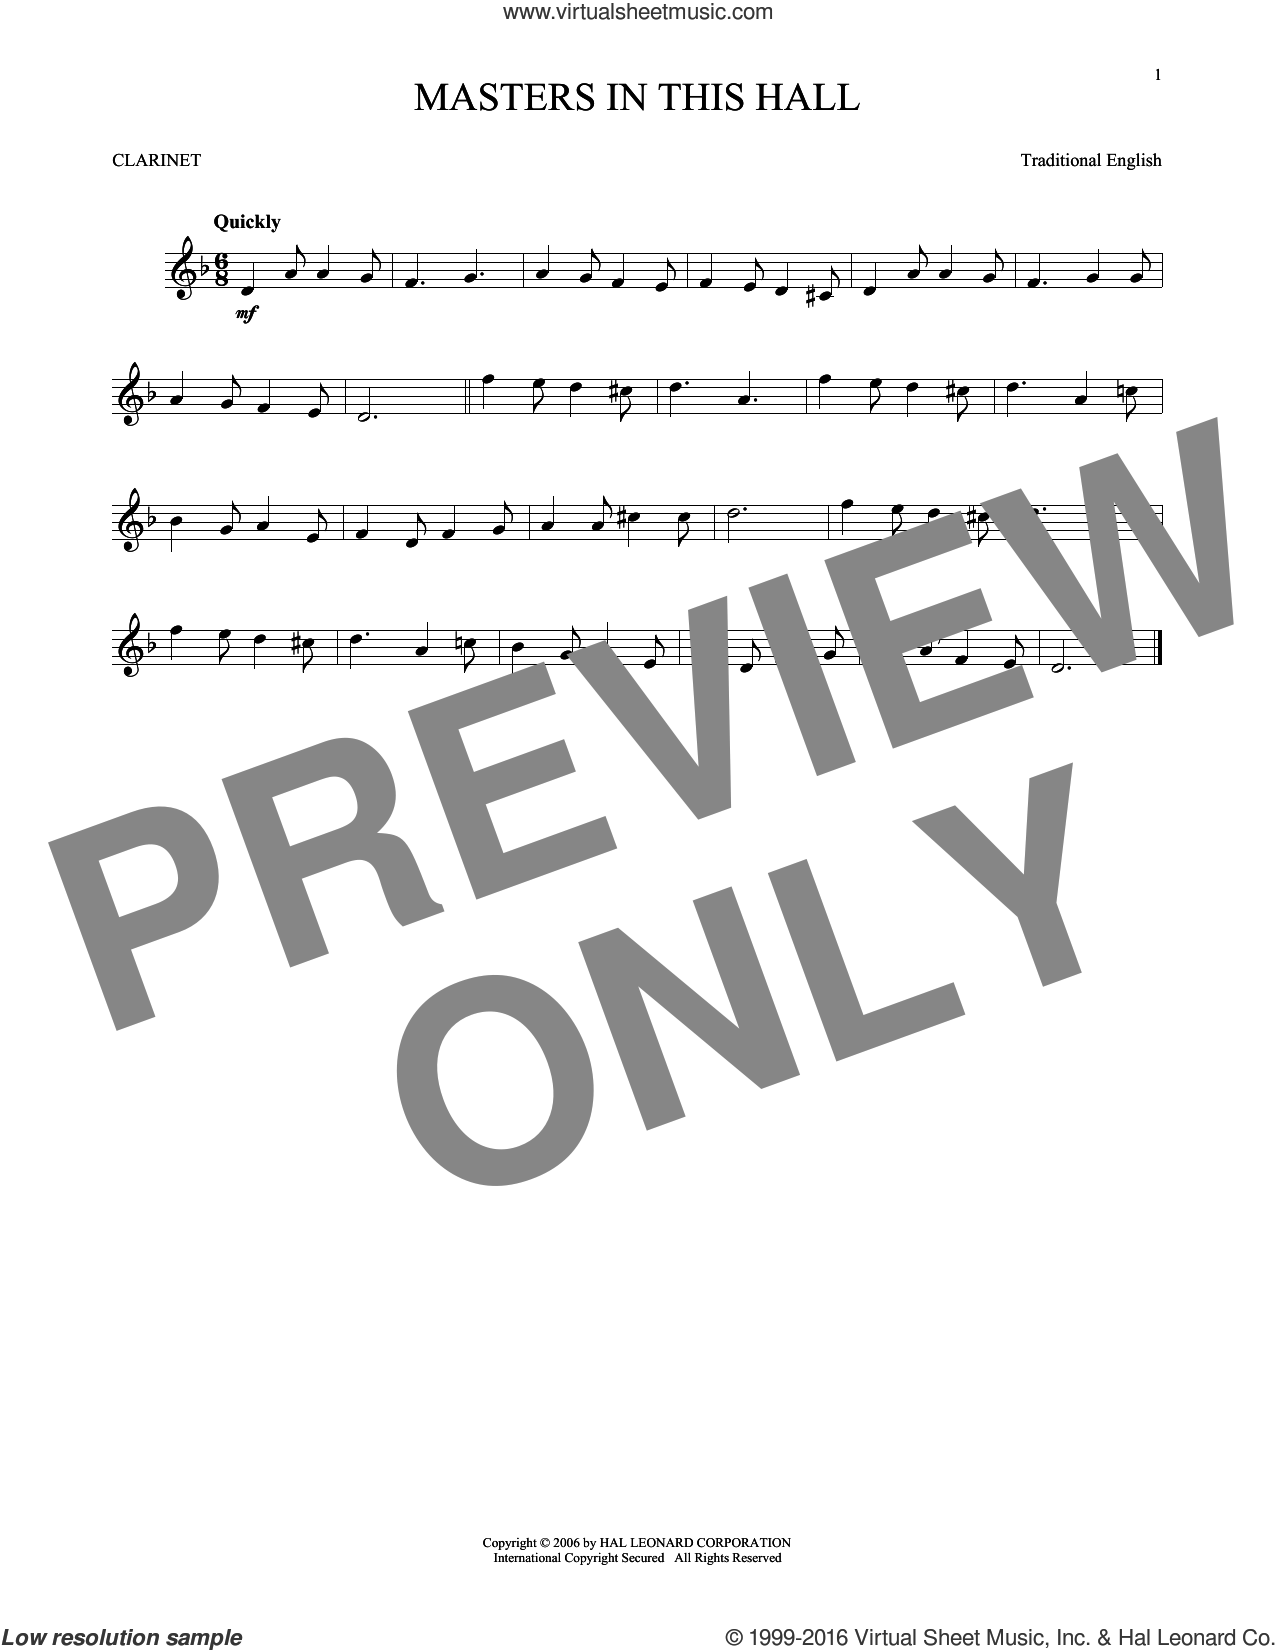 Masters In This Hall sheet music for clarinet solo, intermediate skill level